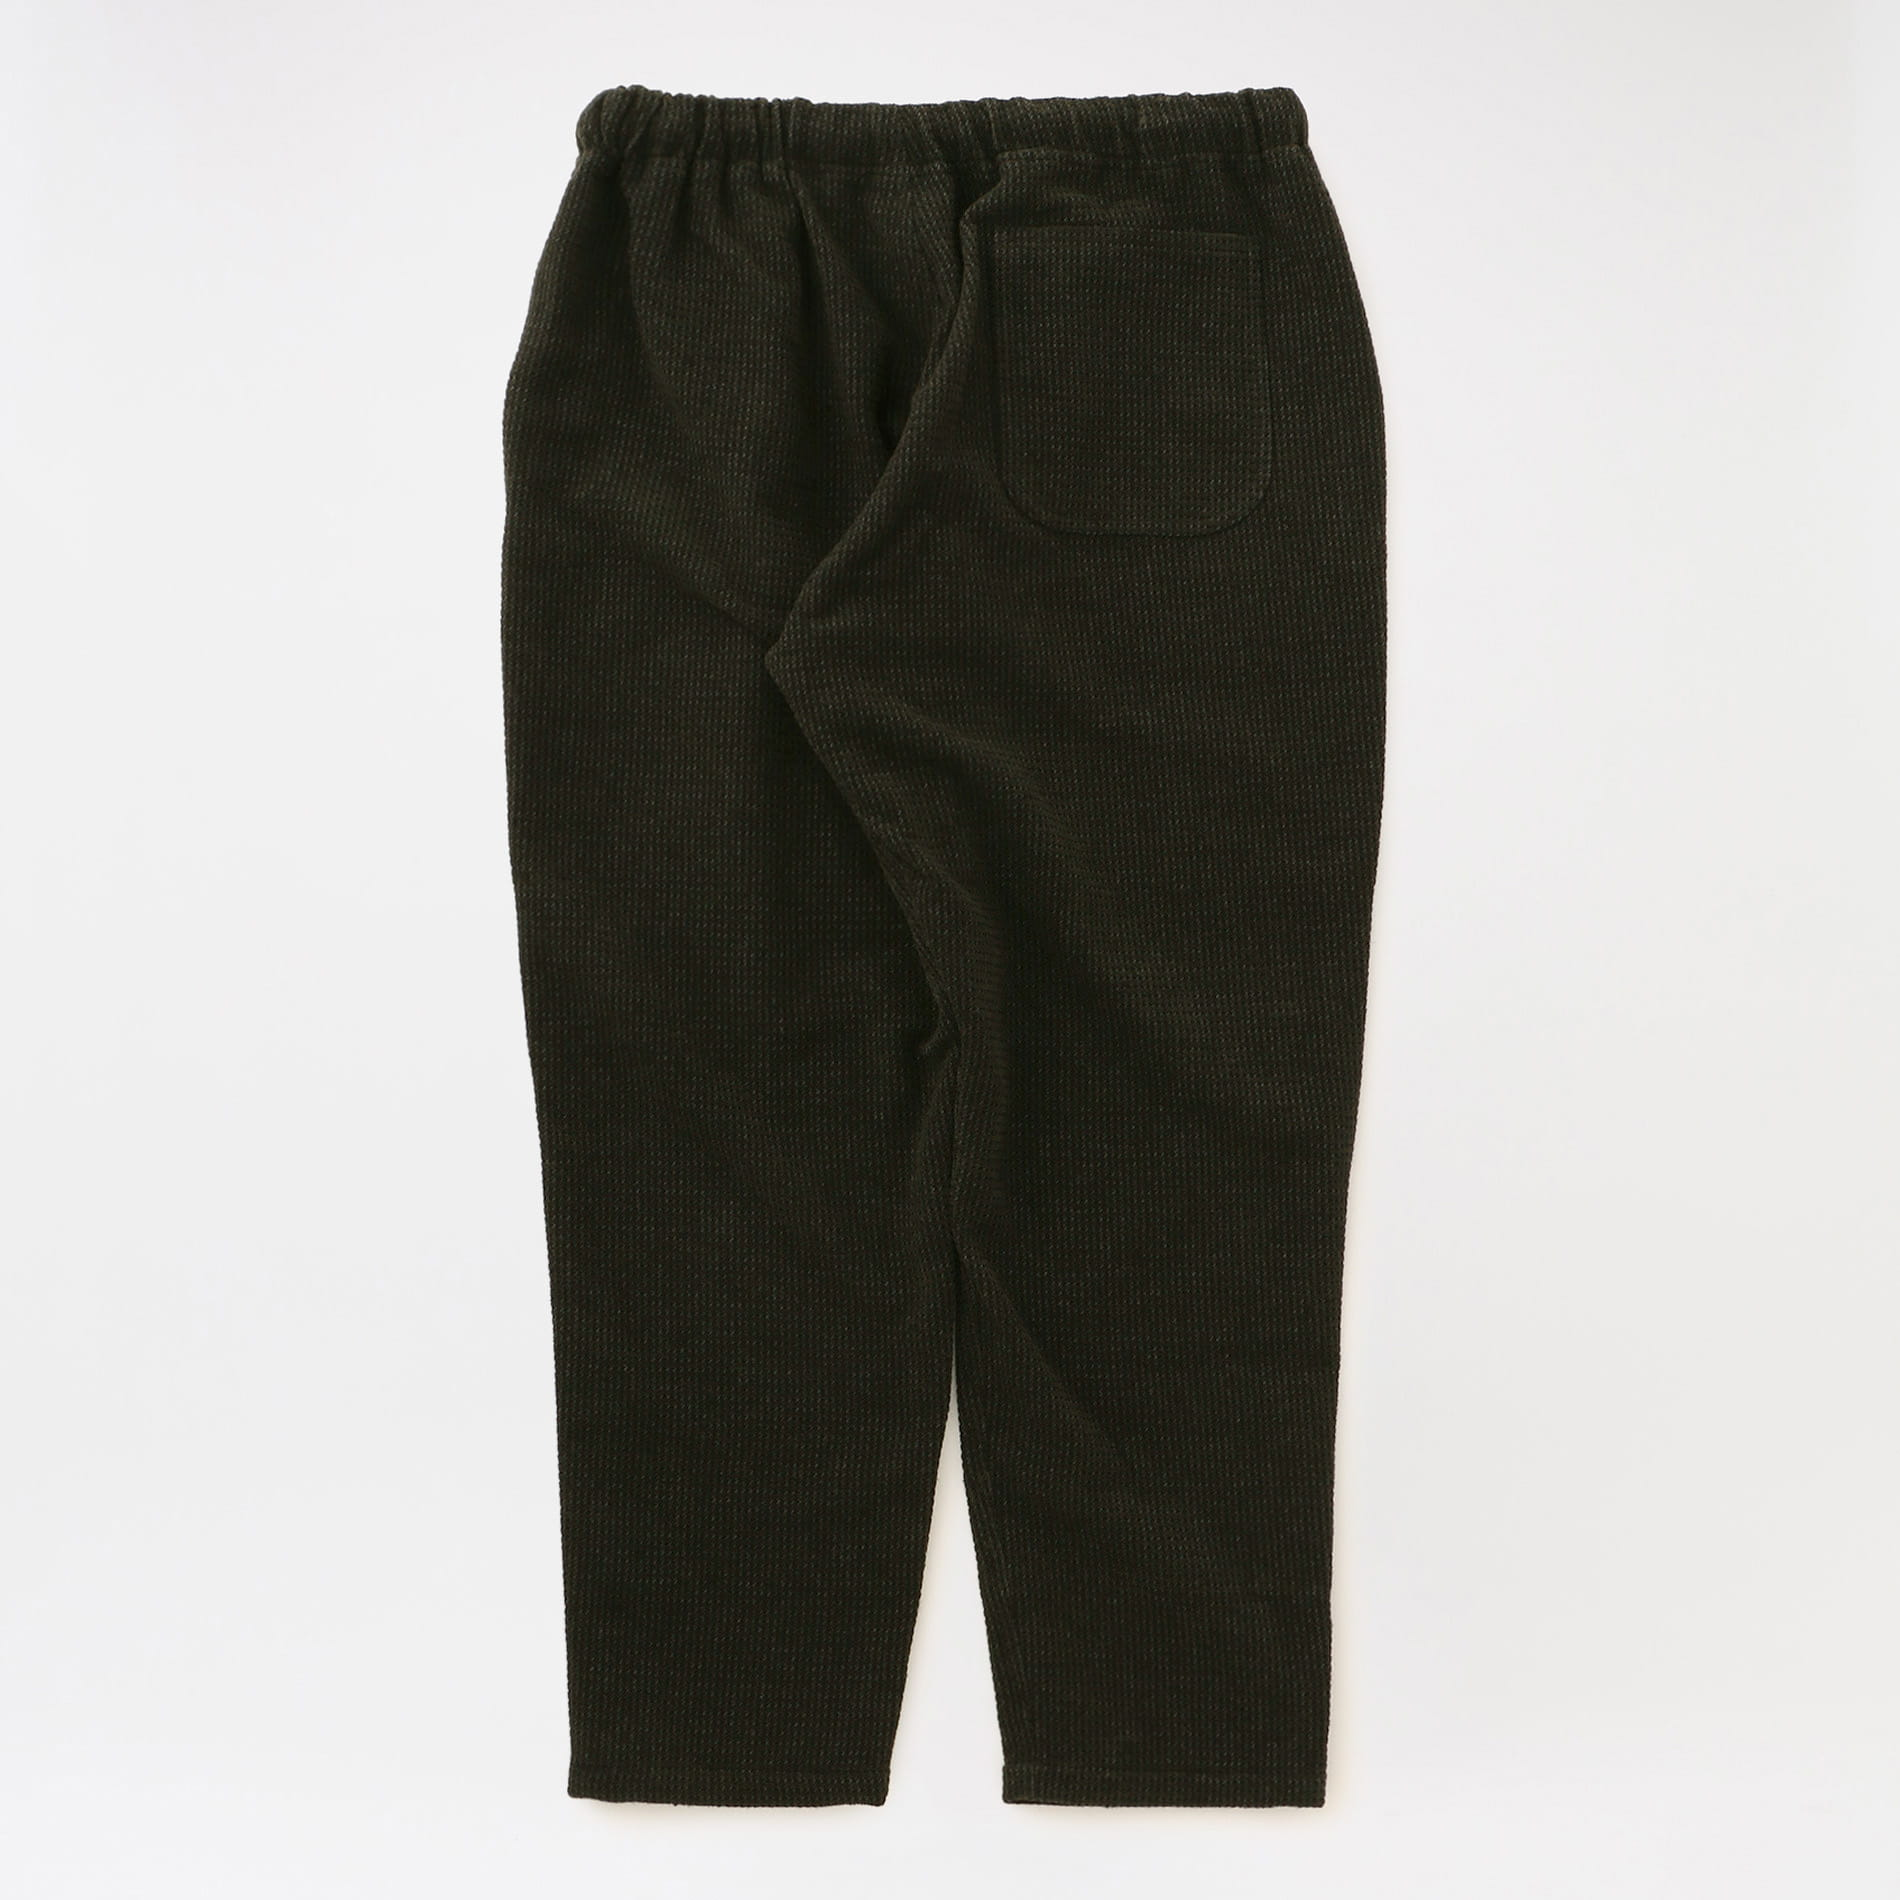 【South2 West8】MEN String Slack Pant - C/W Mole Cloth HM836